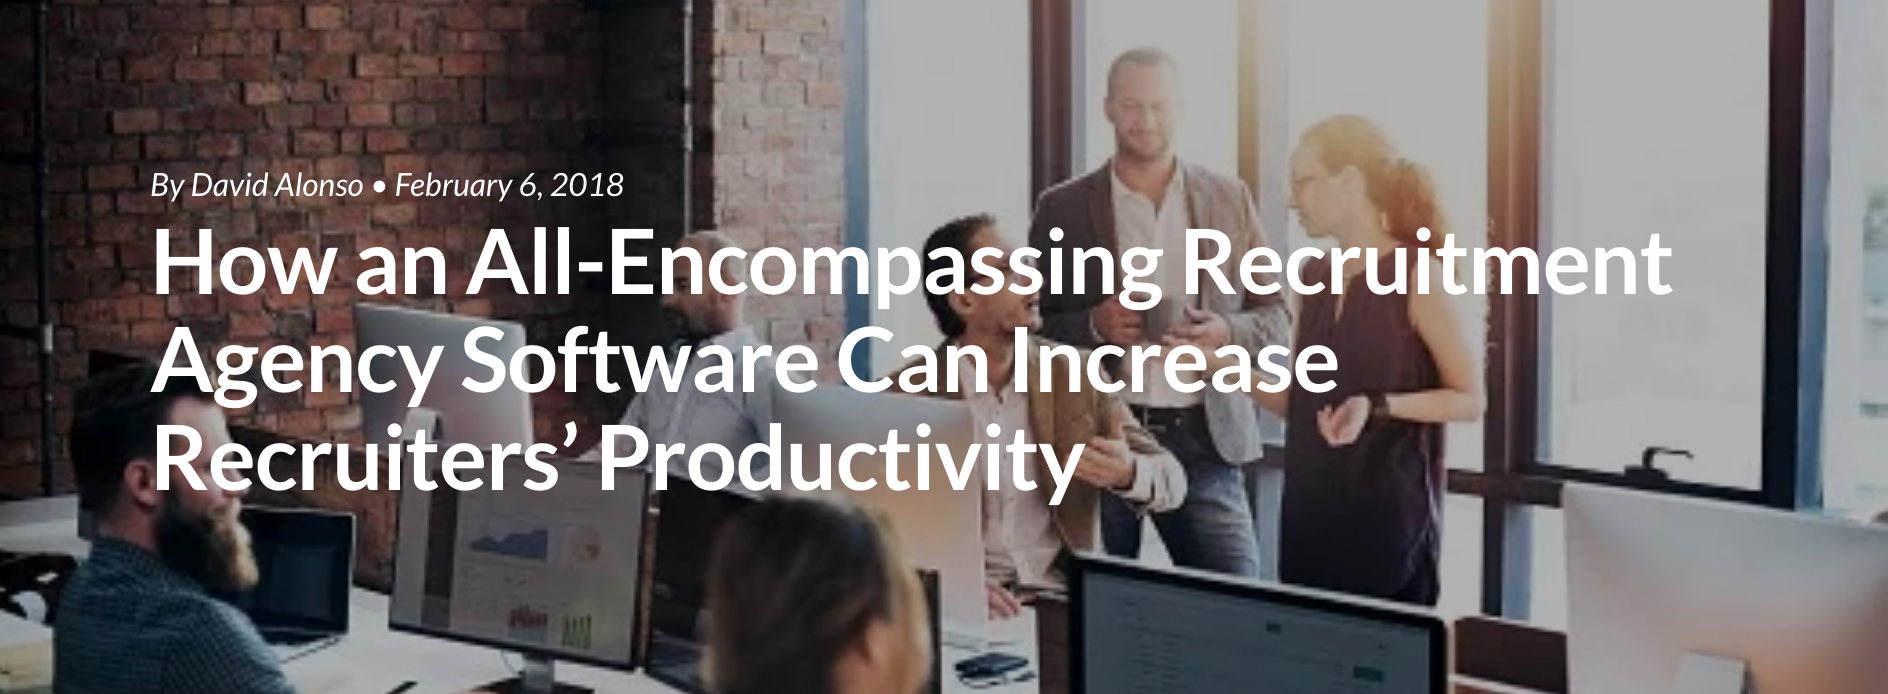 How an All-Encompassing Recruitment Agency Software Can Increase Recruiters' Productivity